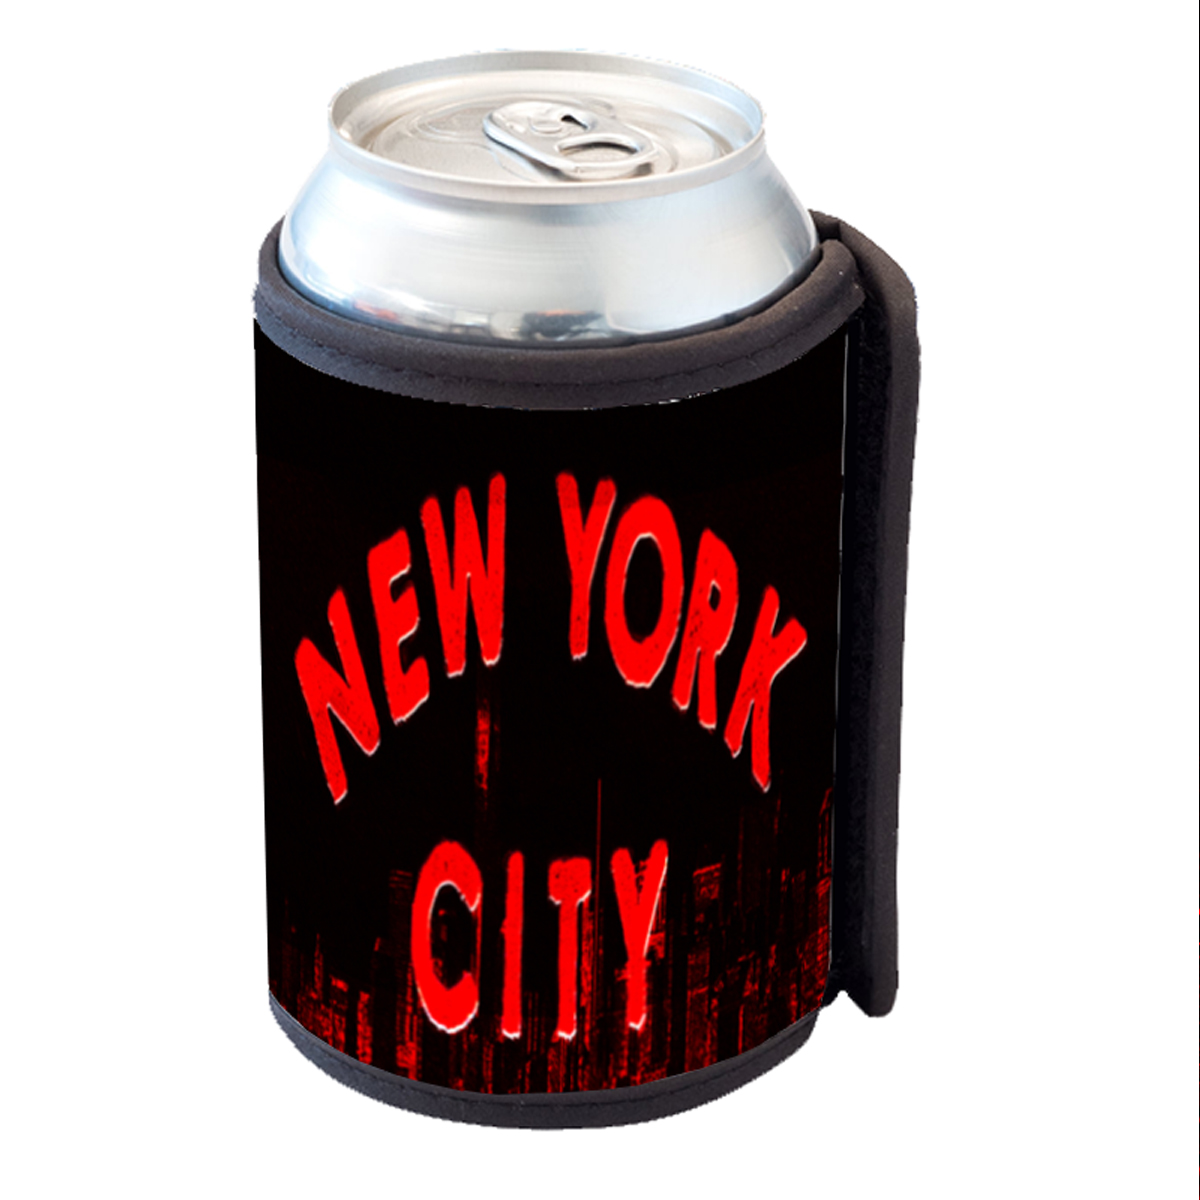 KuzmarK Insulated Drink Can Cooler Hugger - New York City Skyline Red